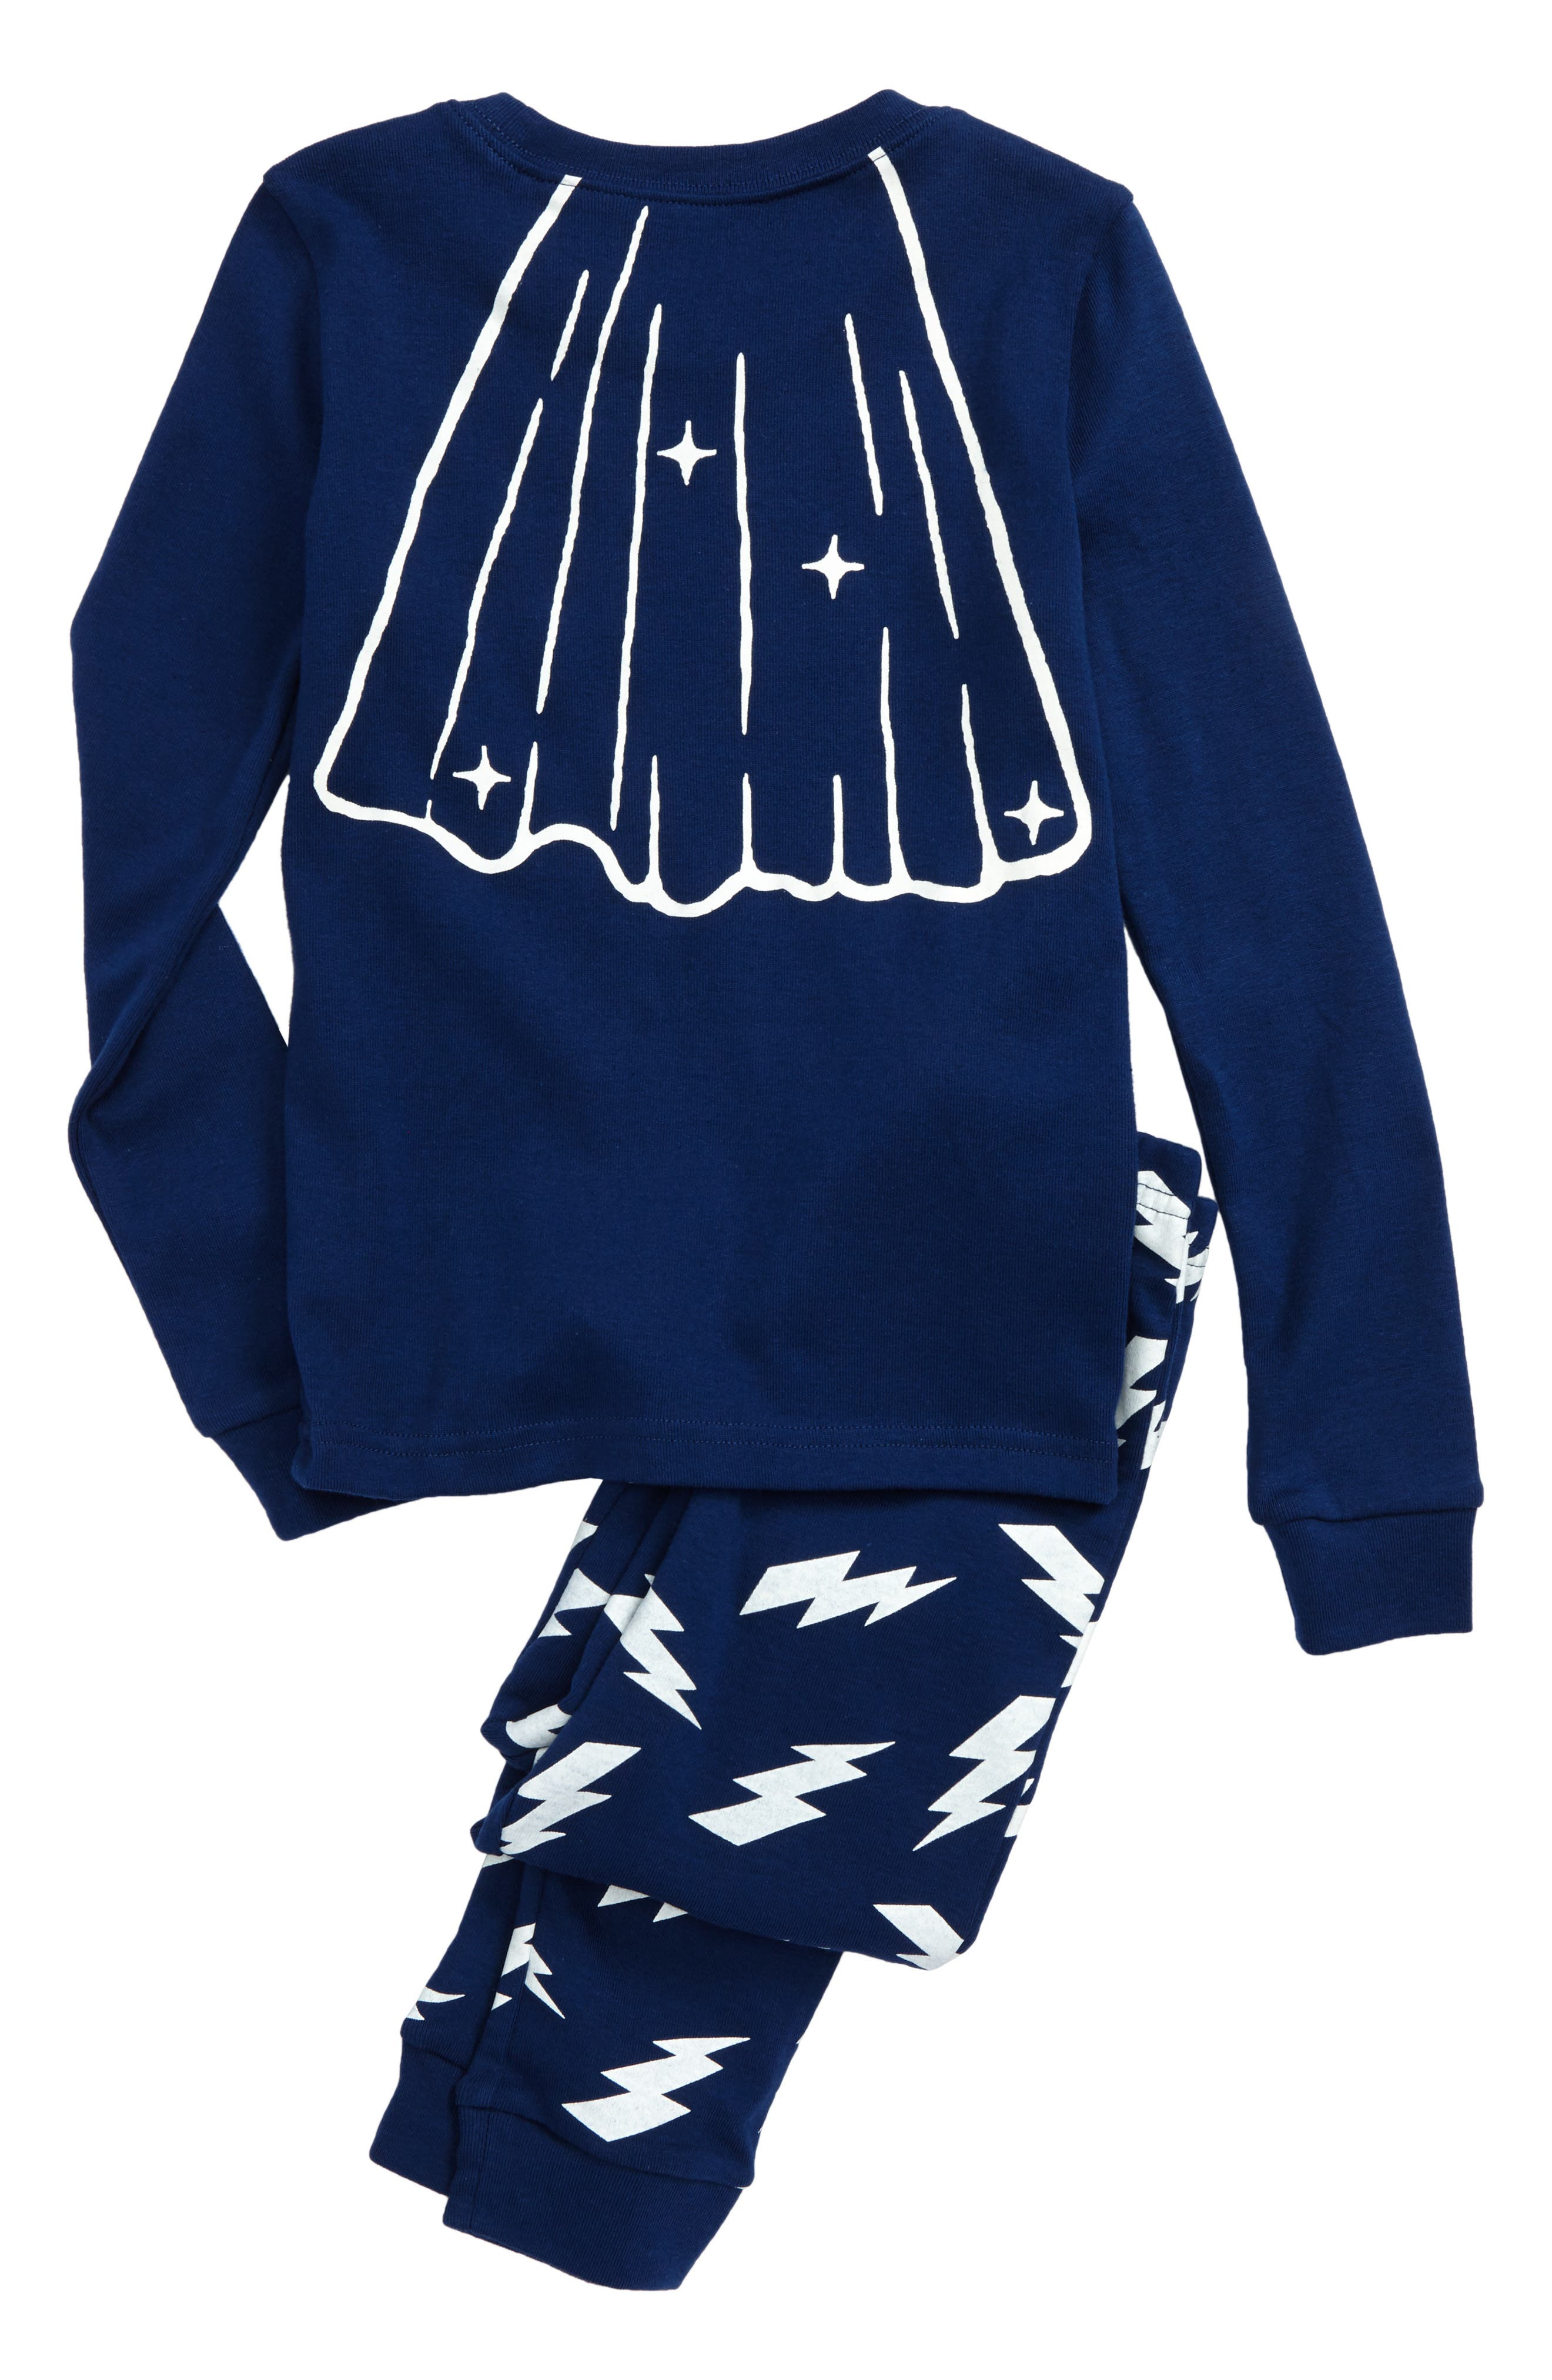 Super Kid Glow in the Dark Fitted Two-Piece Pajamas,                             Alternate thumbnail 2, color,